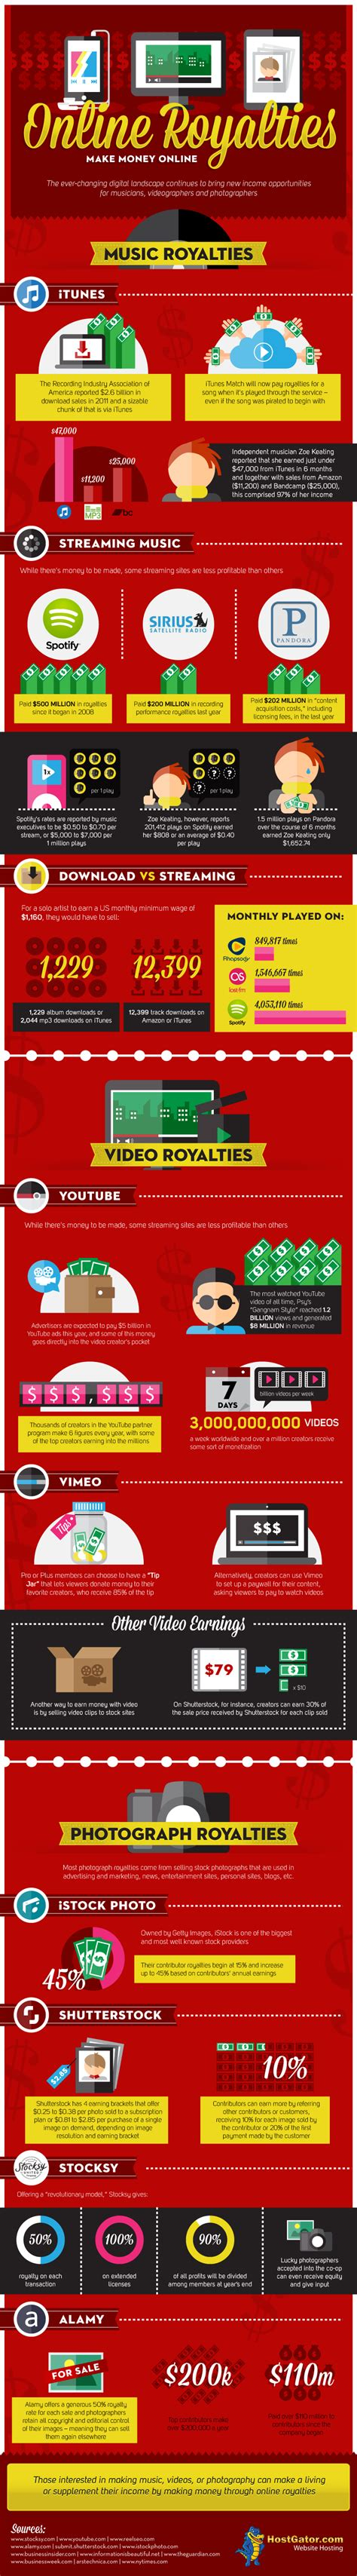 How To Make Money Online As A Graphic Designer - online royalties how to make money online infographic